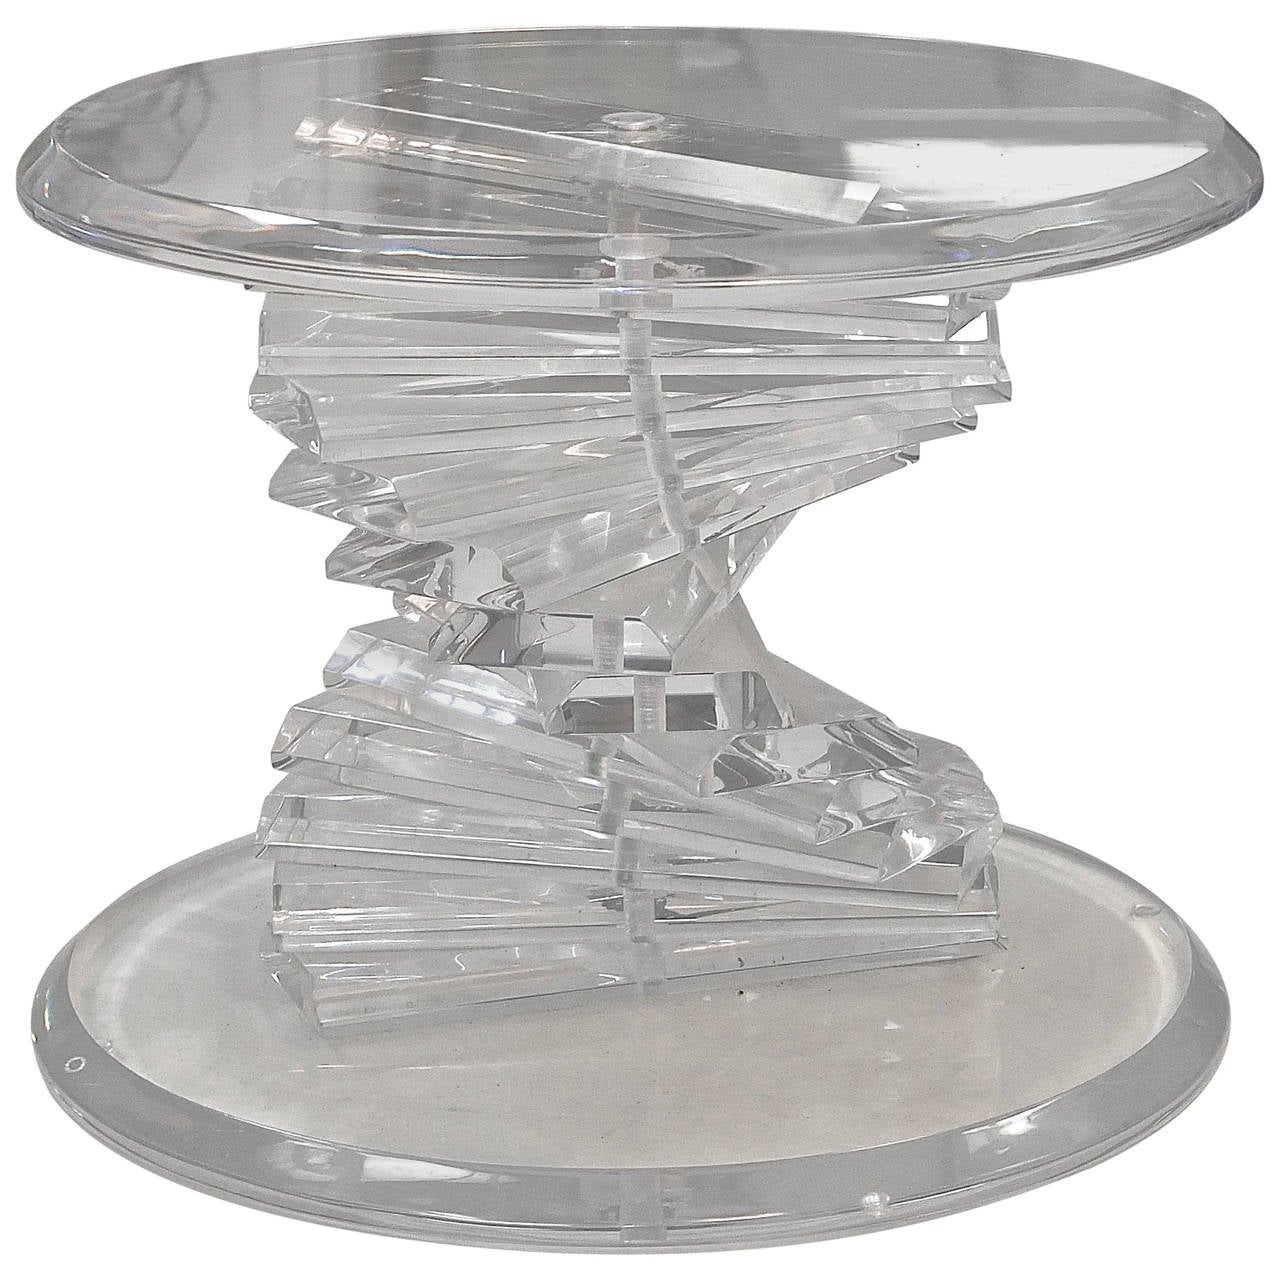 Mid Century Modern Round Side Table : Mid-Century Lucite Spiral Stacked Block Round Table For Sale at ...